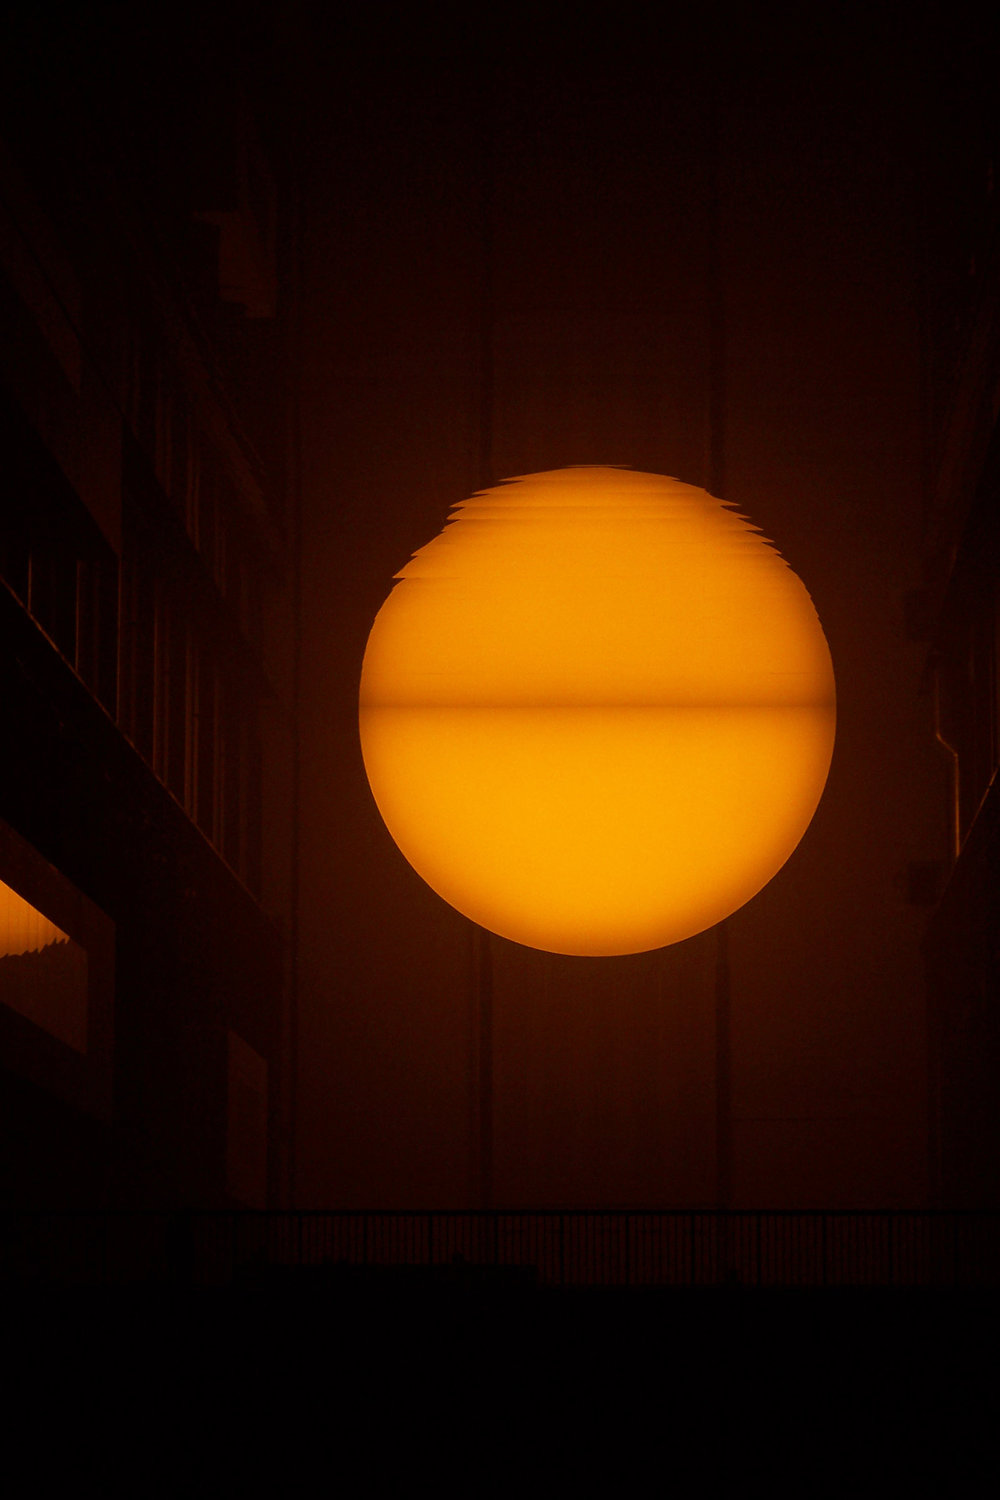 2004_01-08_Olafur-Eliasson_The-Weather-Project-[Tate-Modern]_6_Photograph_James-Bulley.jpg